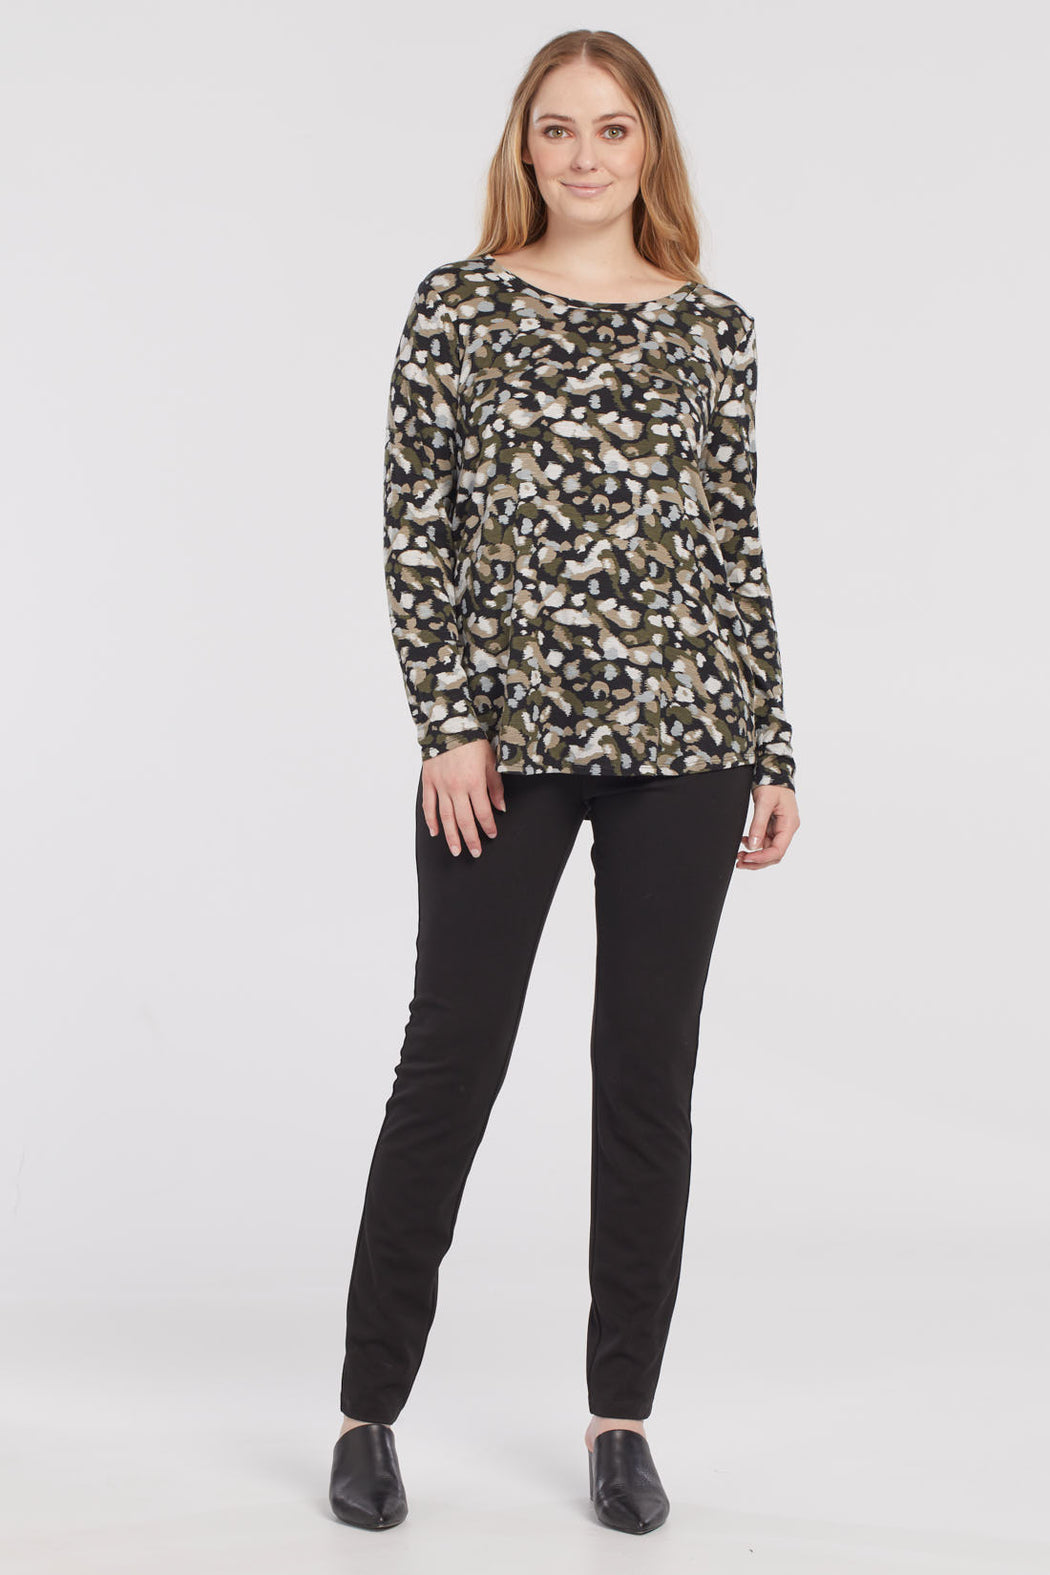 Tribal Long Sleeve With Back Opening. This lightweight top in slub jersey with a soft scoop neck, has all the features to be a superstar in your wardrobe. The layer-friendly fabric, back opening feature, and charming abstract pattern make it just as suitable for the office as it is for a night out.